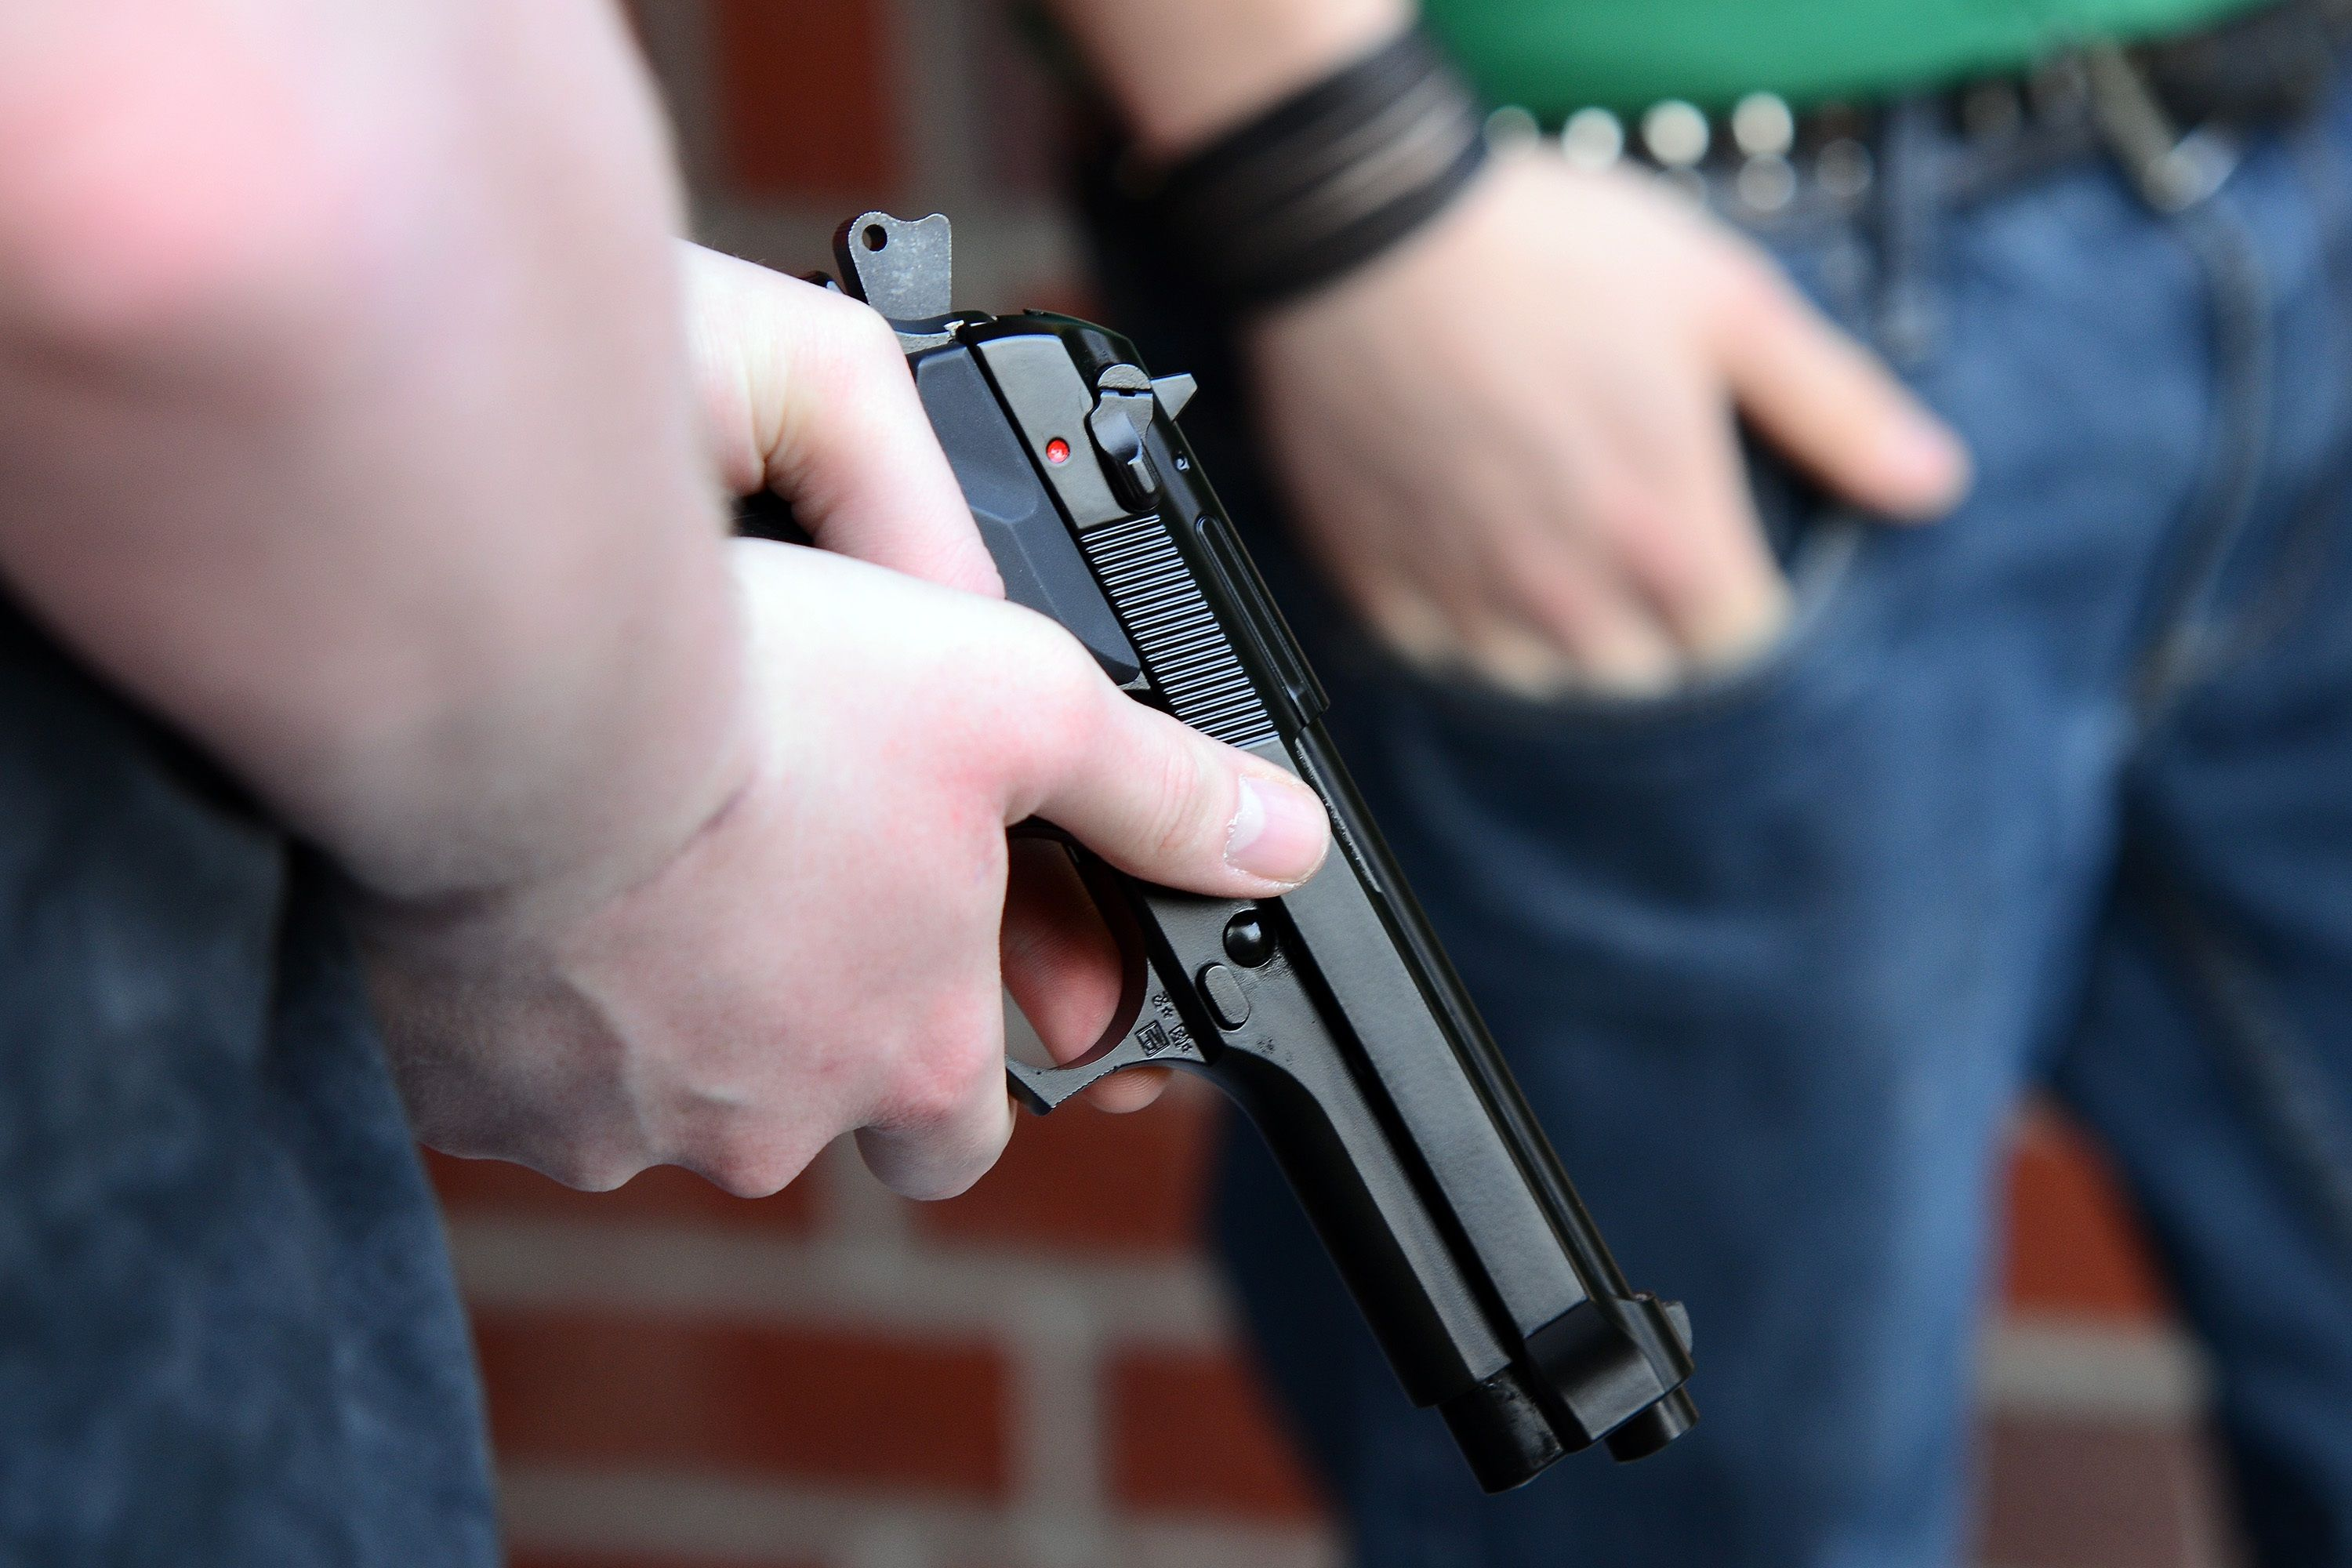 Should We Allow CCP Holders to Carry Guns on Campus? 11 Reservations of a 'Gun Guy'